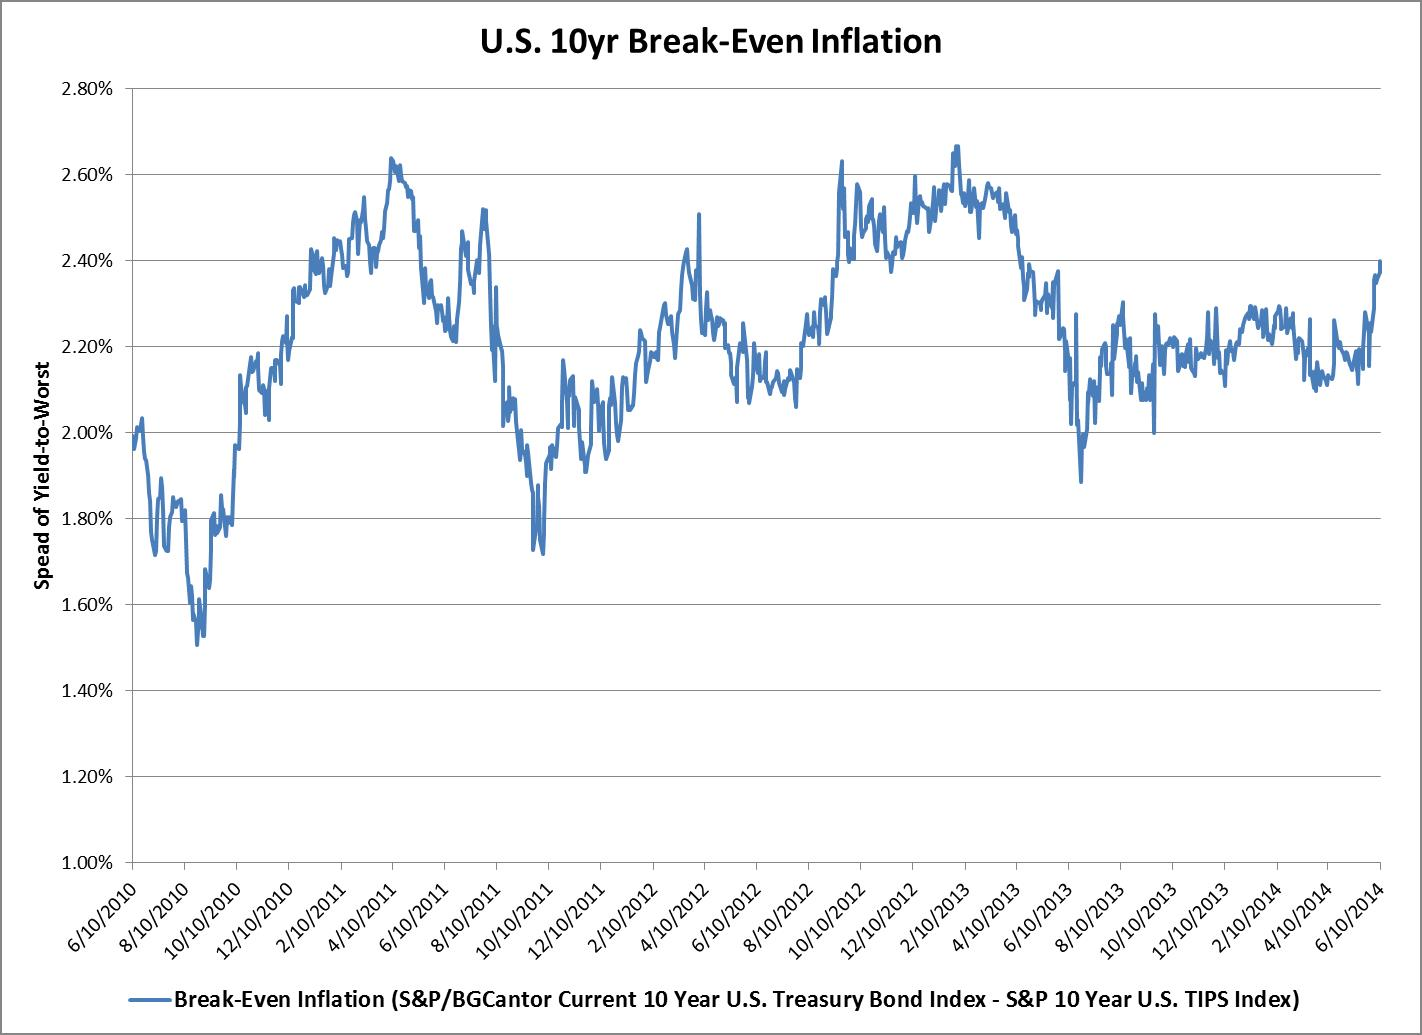 Break-Even Inflation